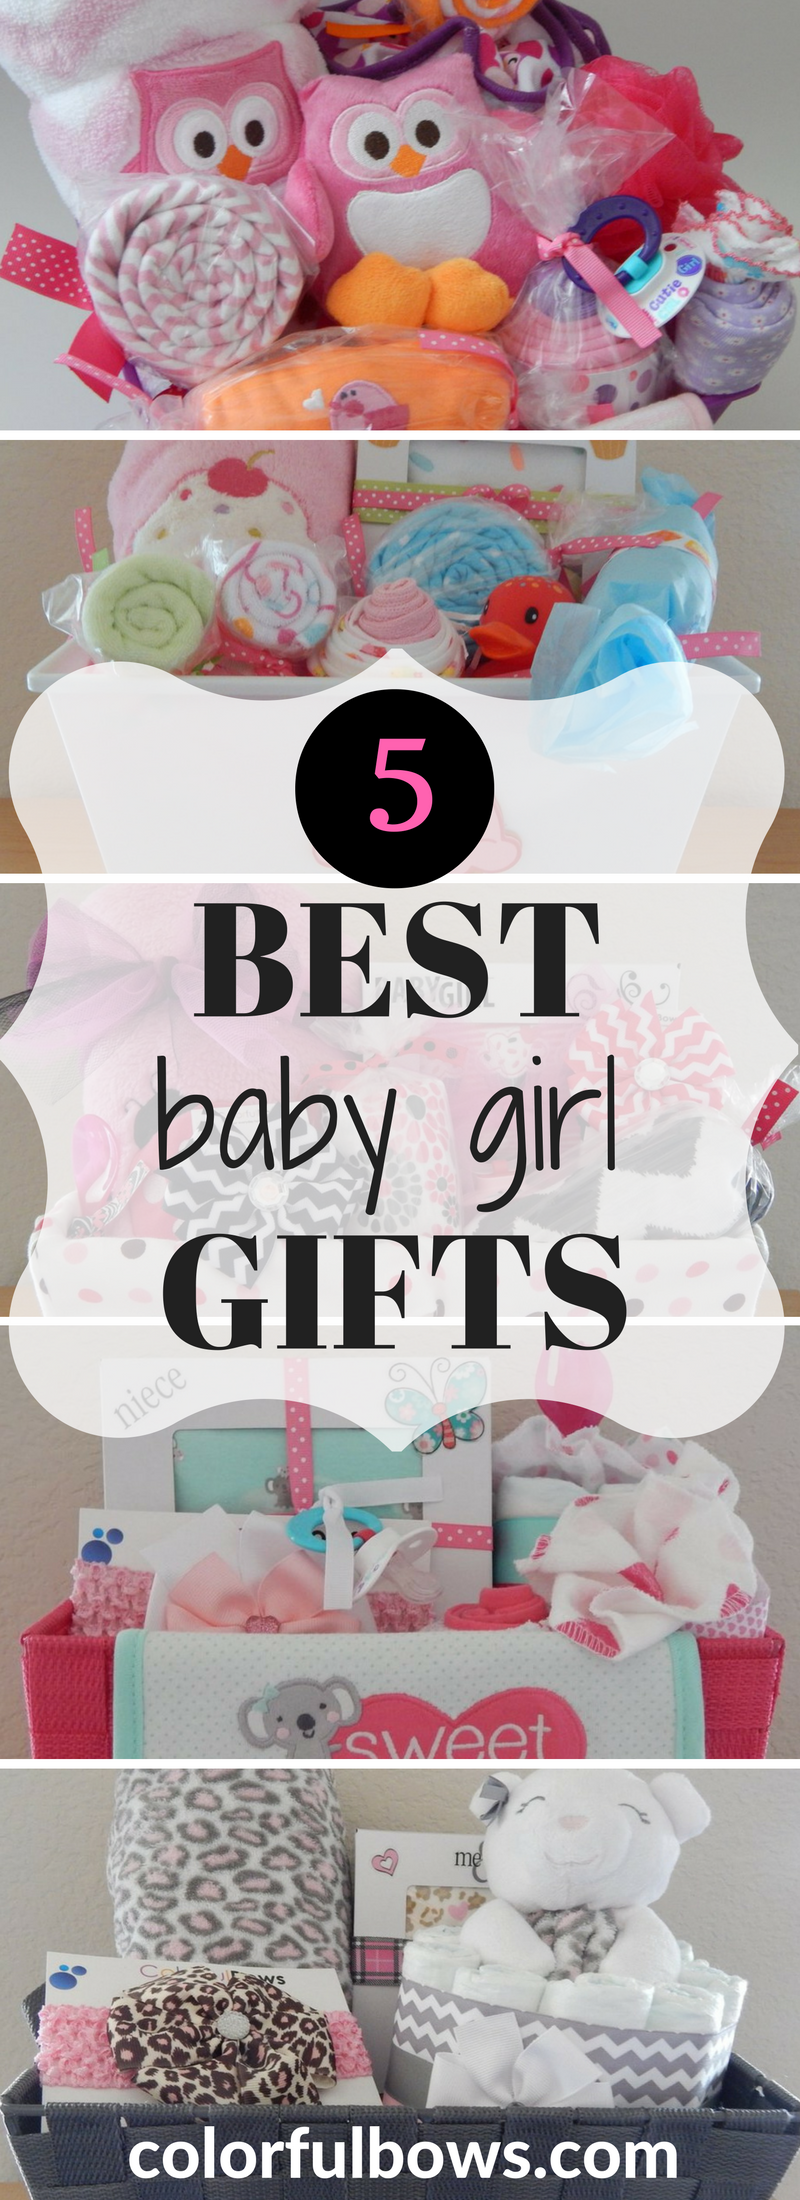 Need a new baby girl gift but don't have time to shop around? We have you covered! To save you time, we put together a collection that includes 5 of our baskets that would definitely make a great gift for a new baby girl or baby shower. Come and take a look for yourself!